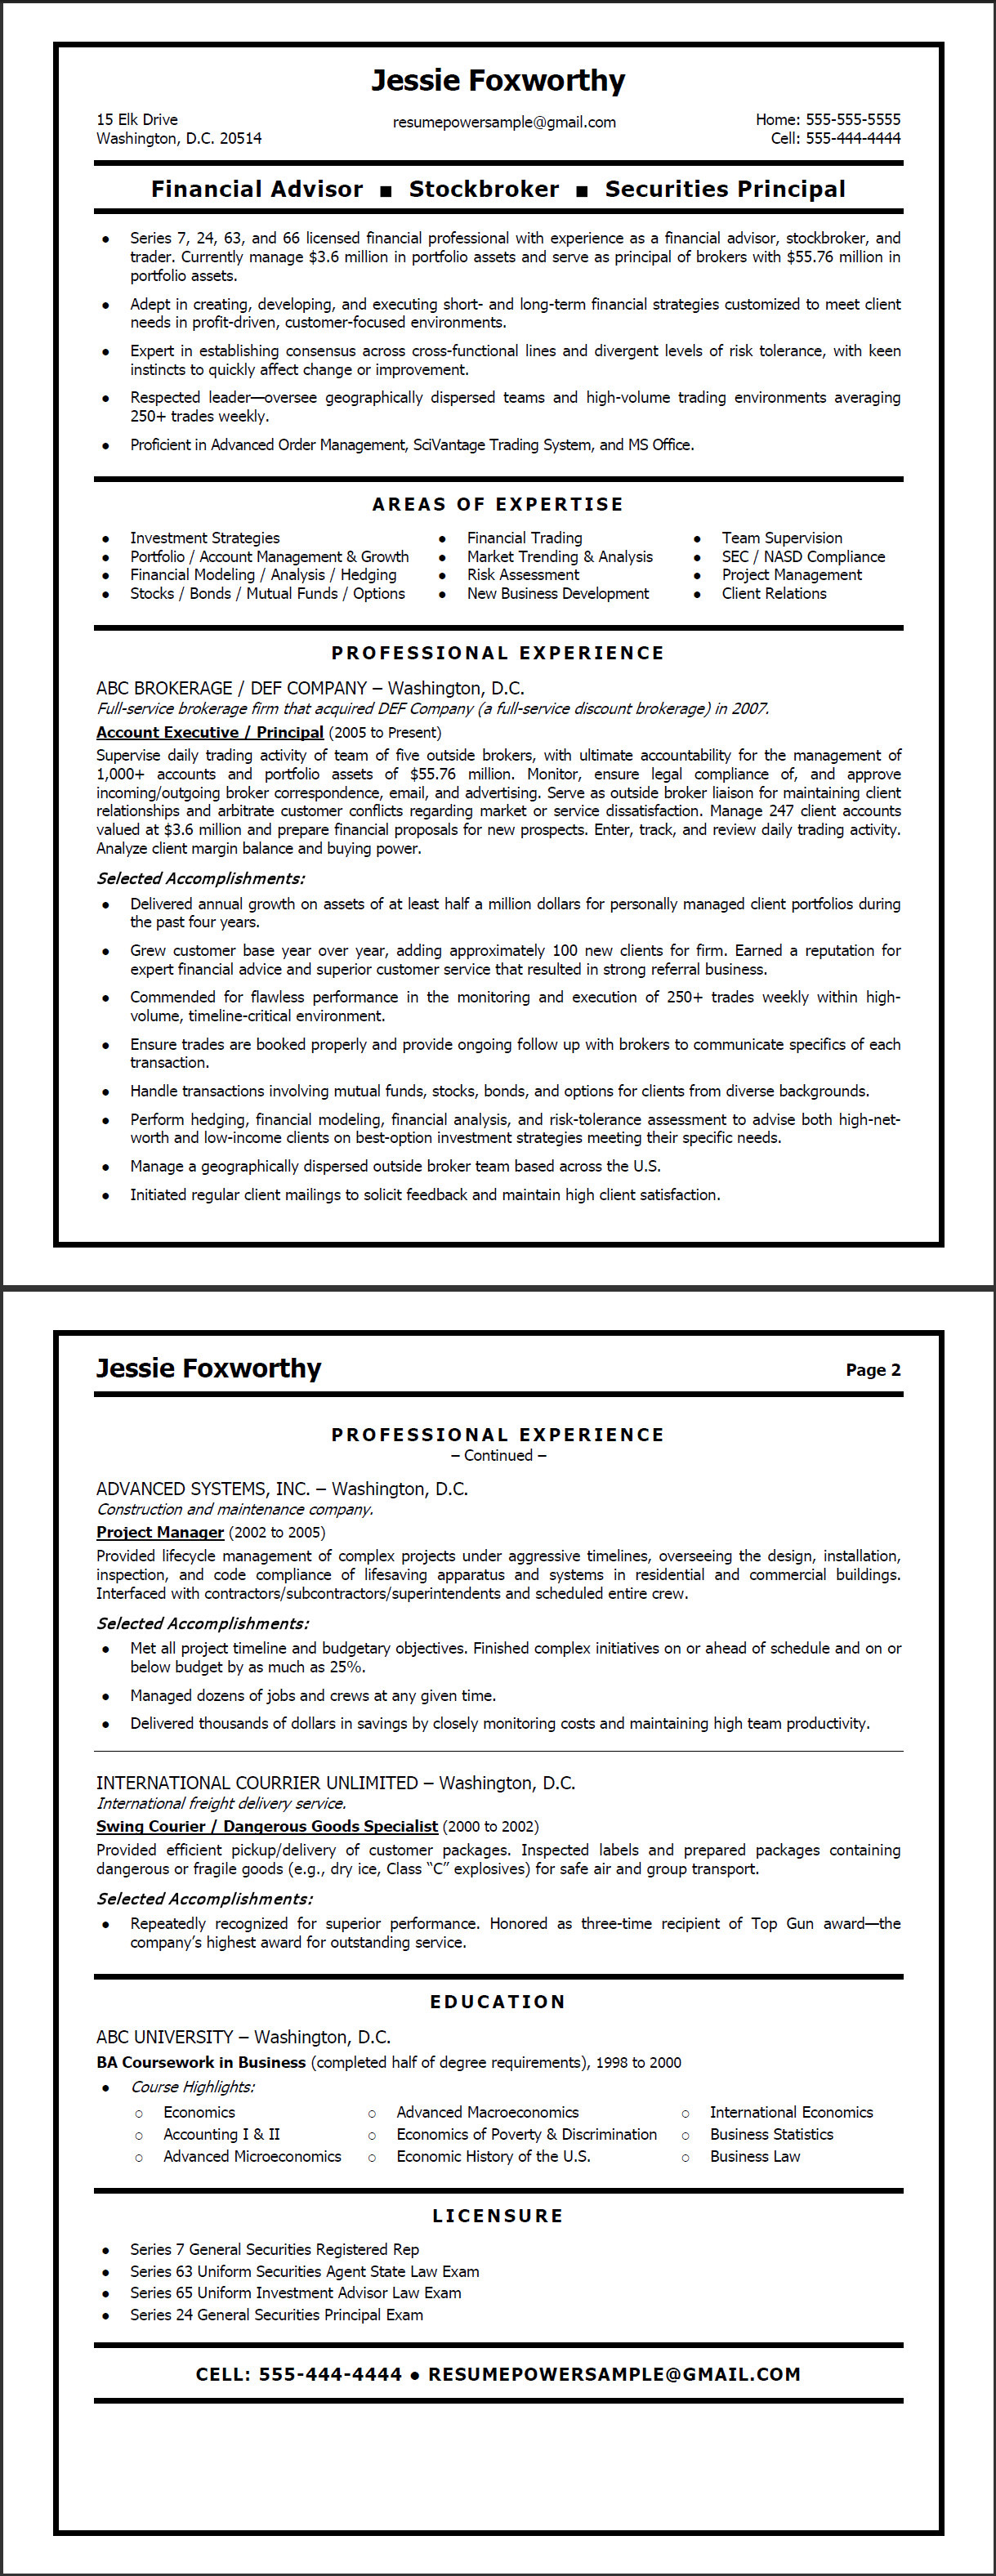 free word doc resumes resume builder for welders hr